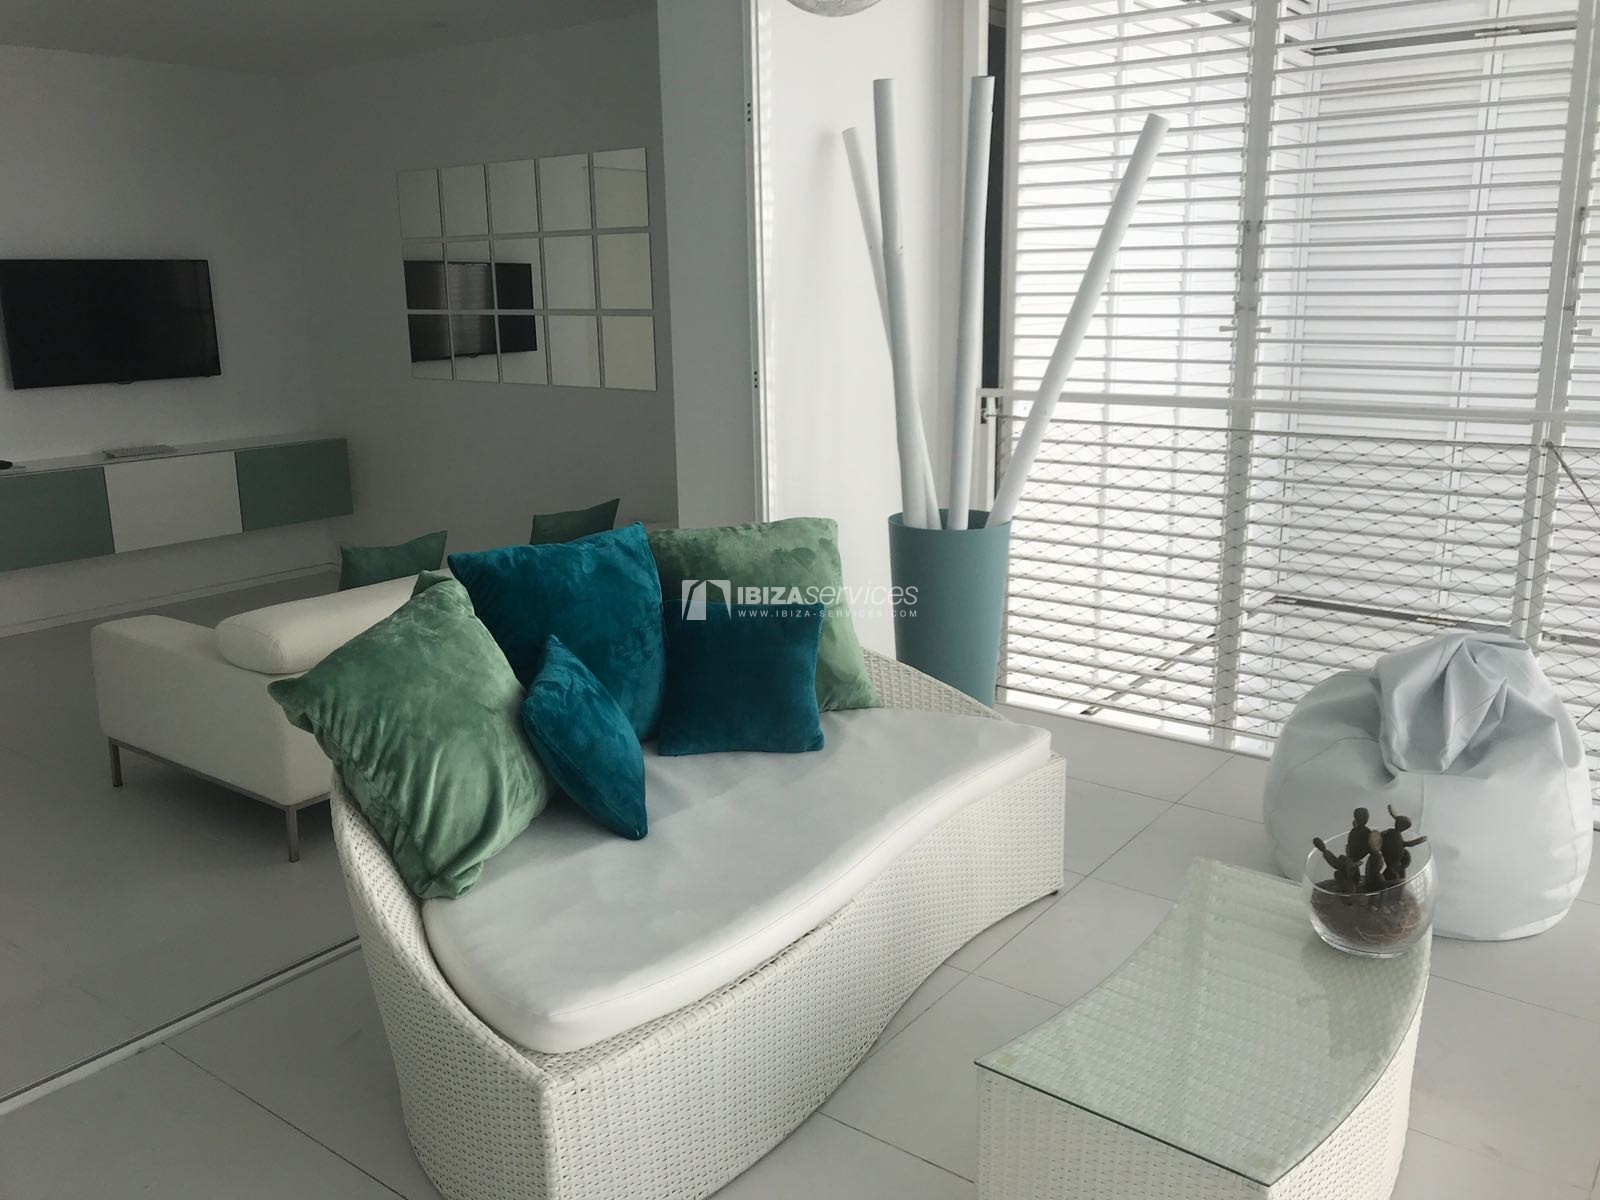 2 bedroom apartment for sale Patio Blanco perspectiva 2